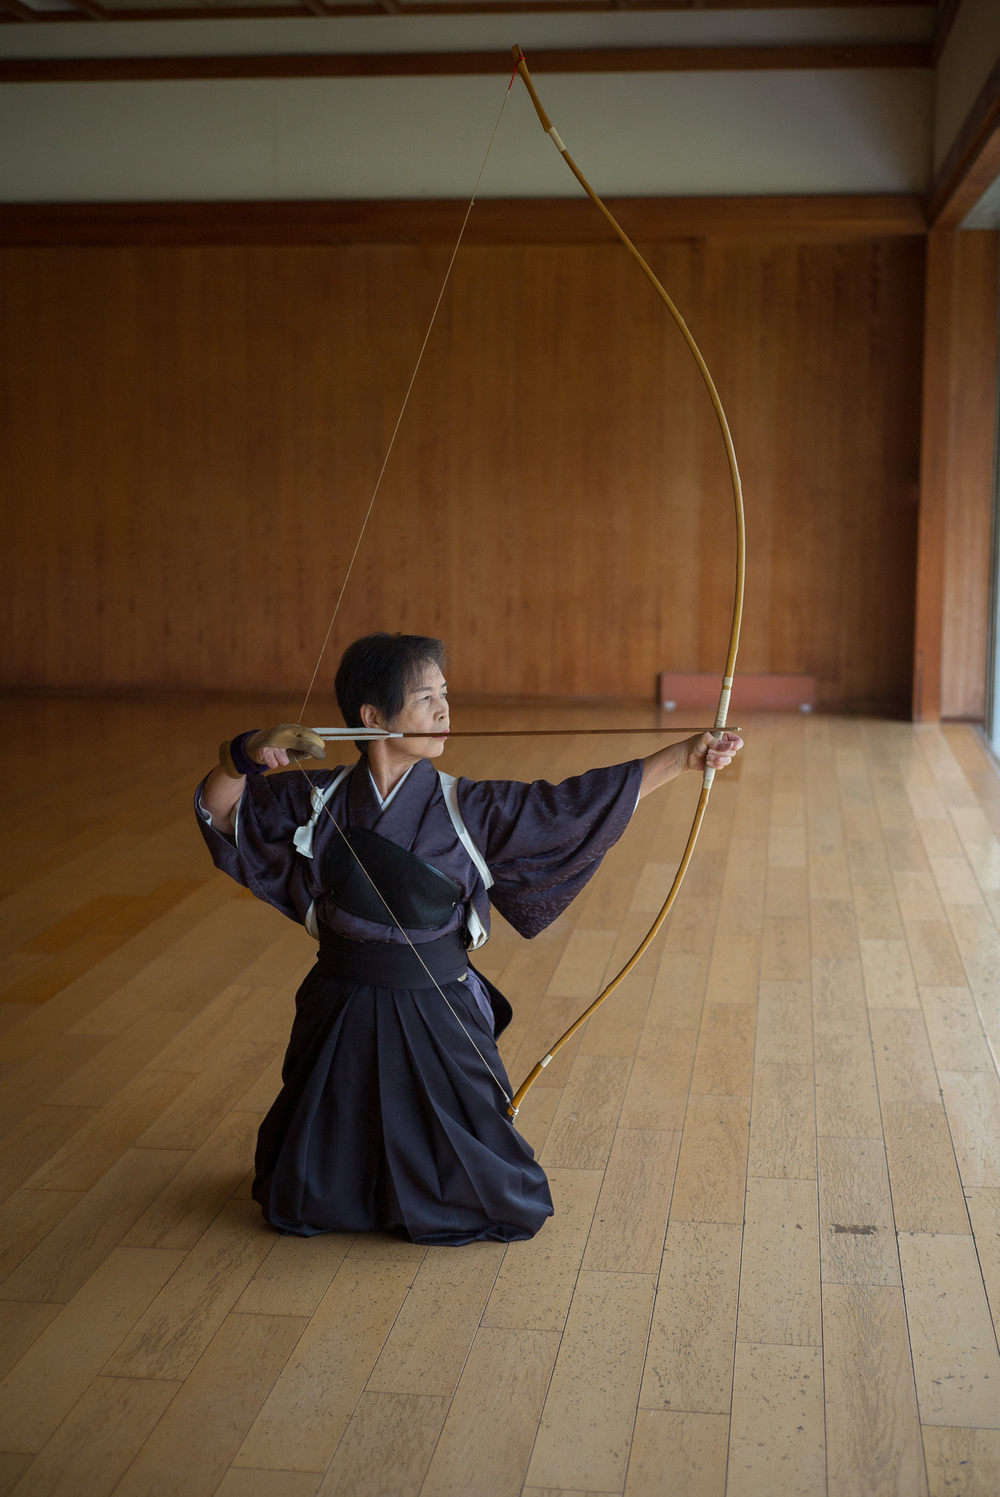 Zen in the Art of Archery © Adam Marelli-7.jpg